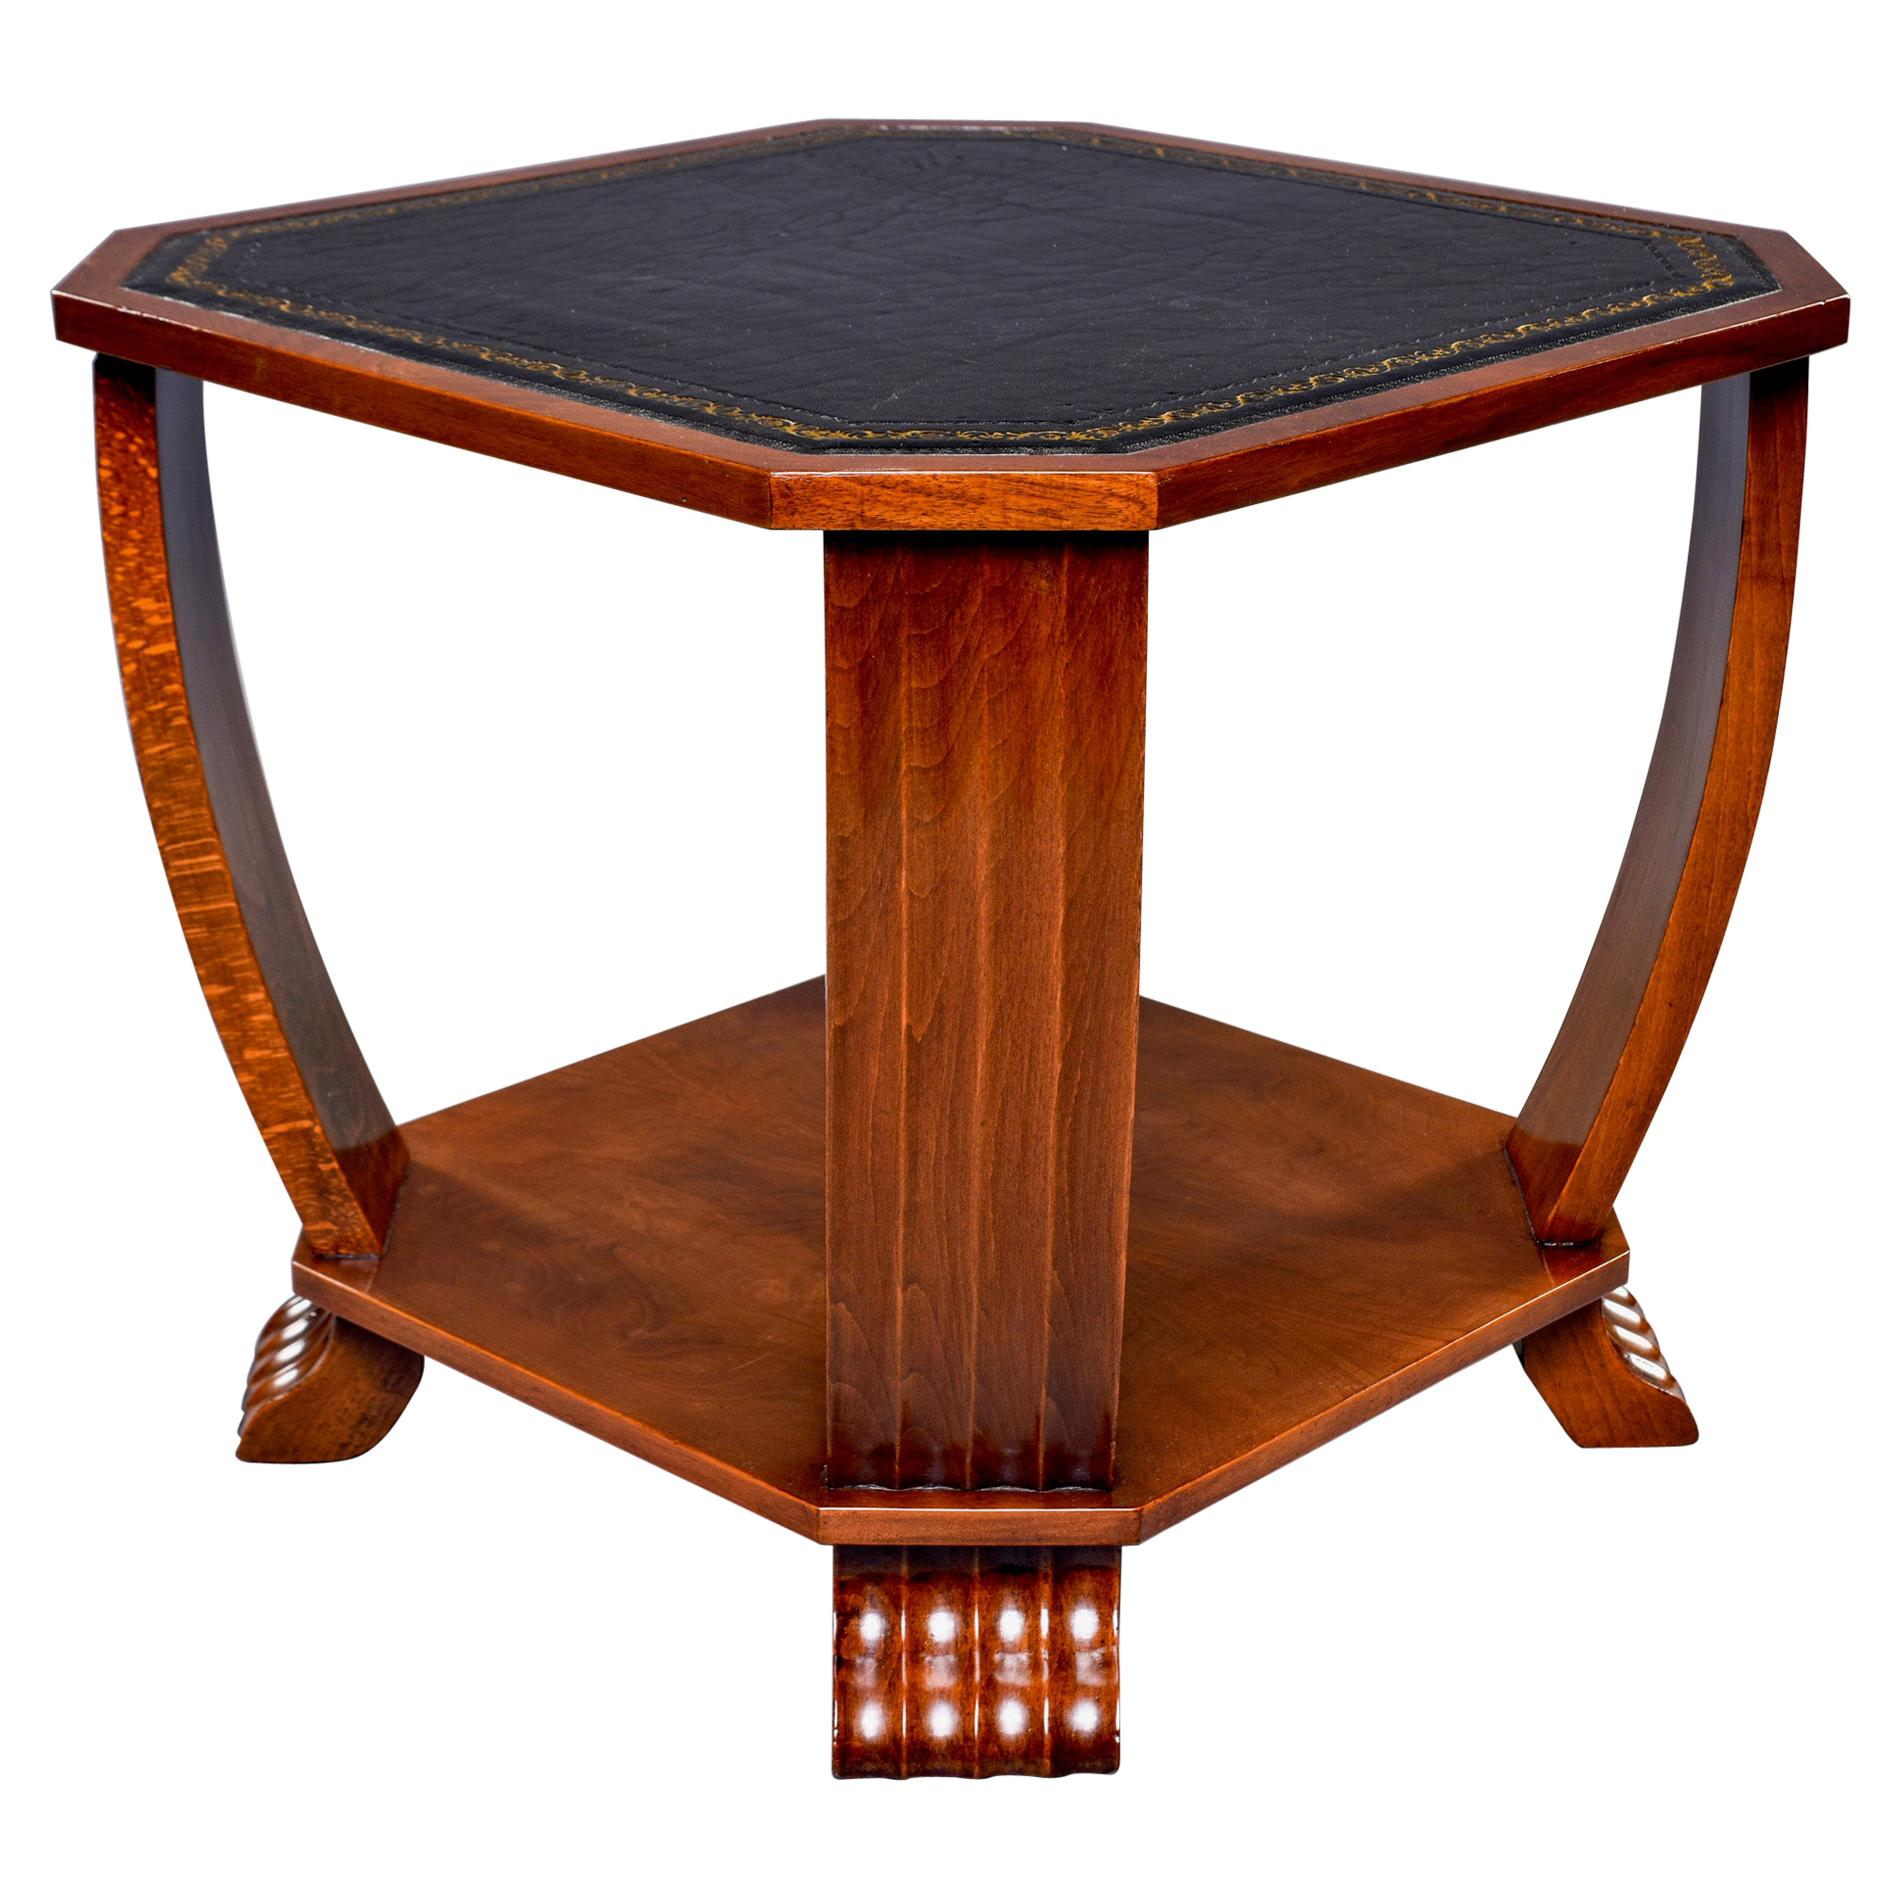 French Art Deco Side Table with Black Leather Top